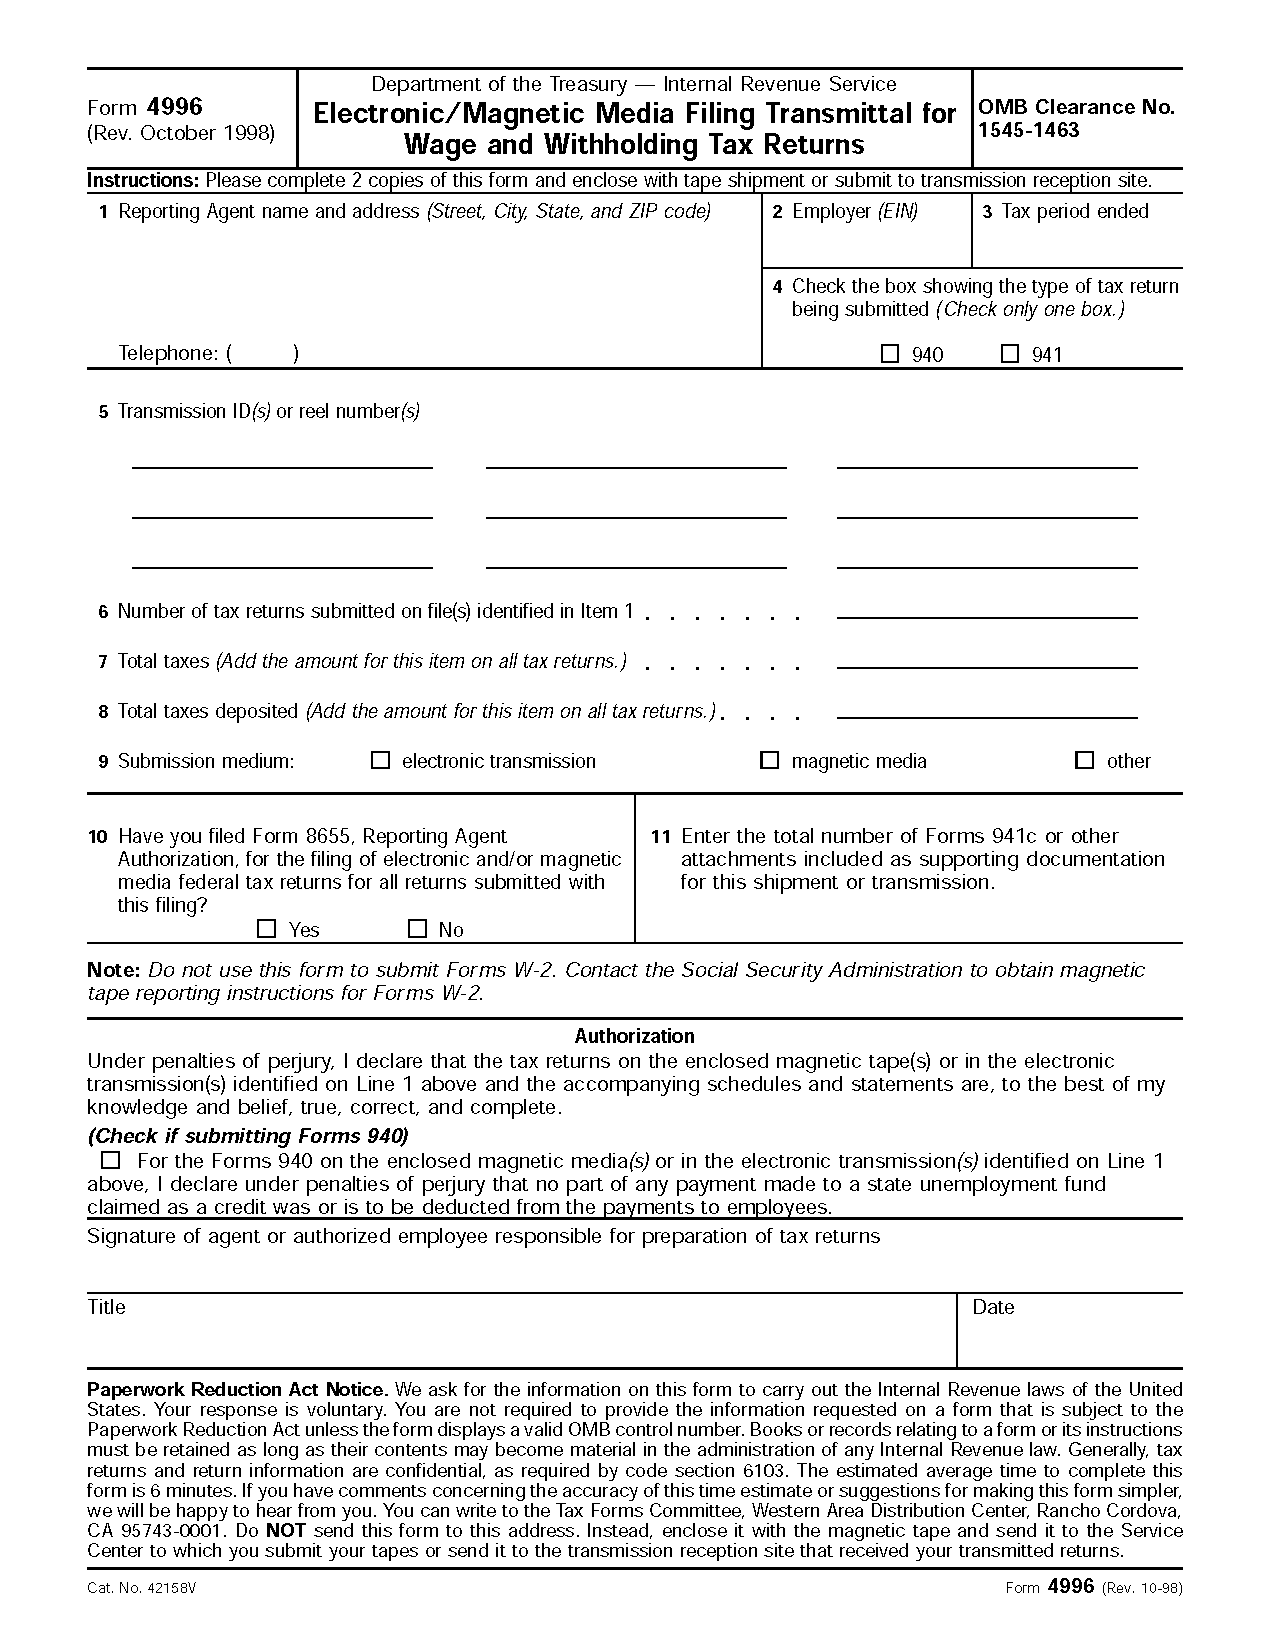 Form Electronic Magnetic Media Filing Transmittal For Wage And Withholding Tax Returns